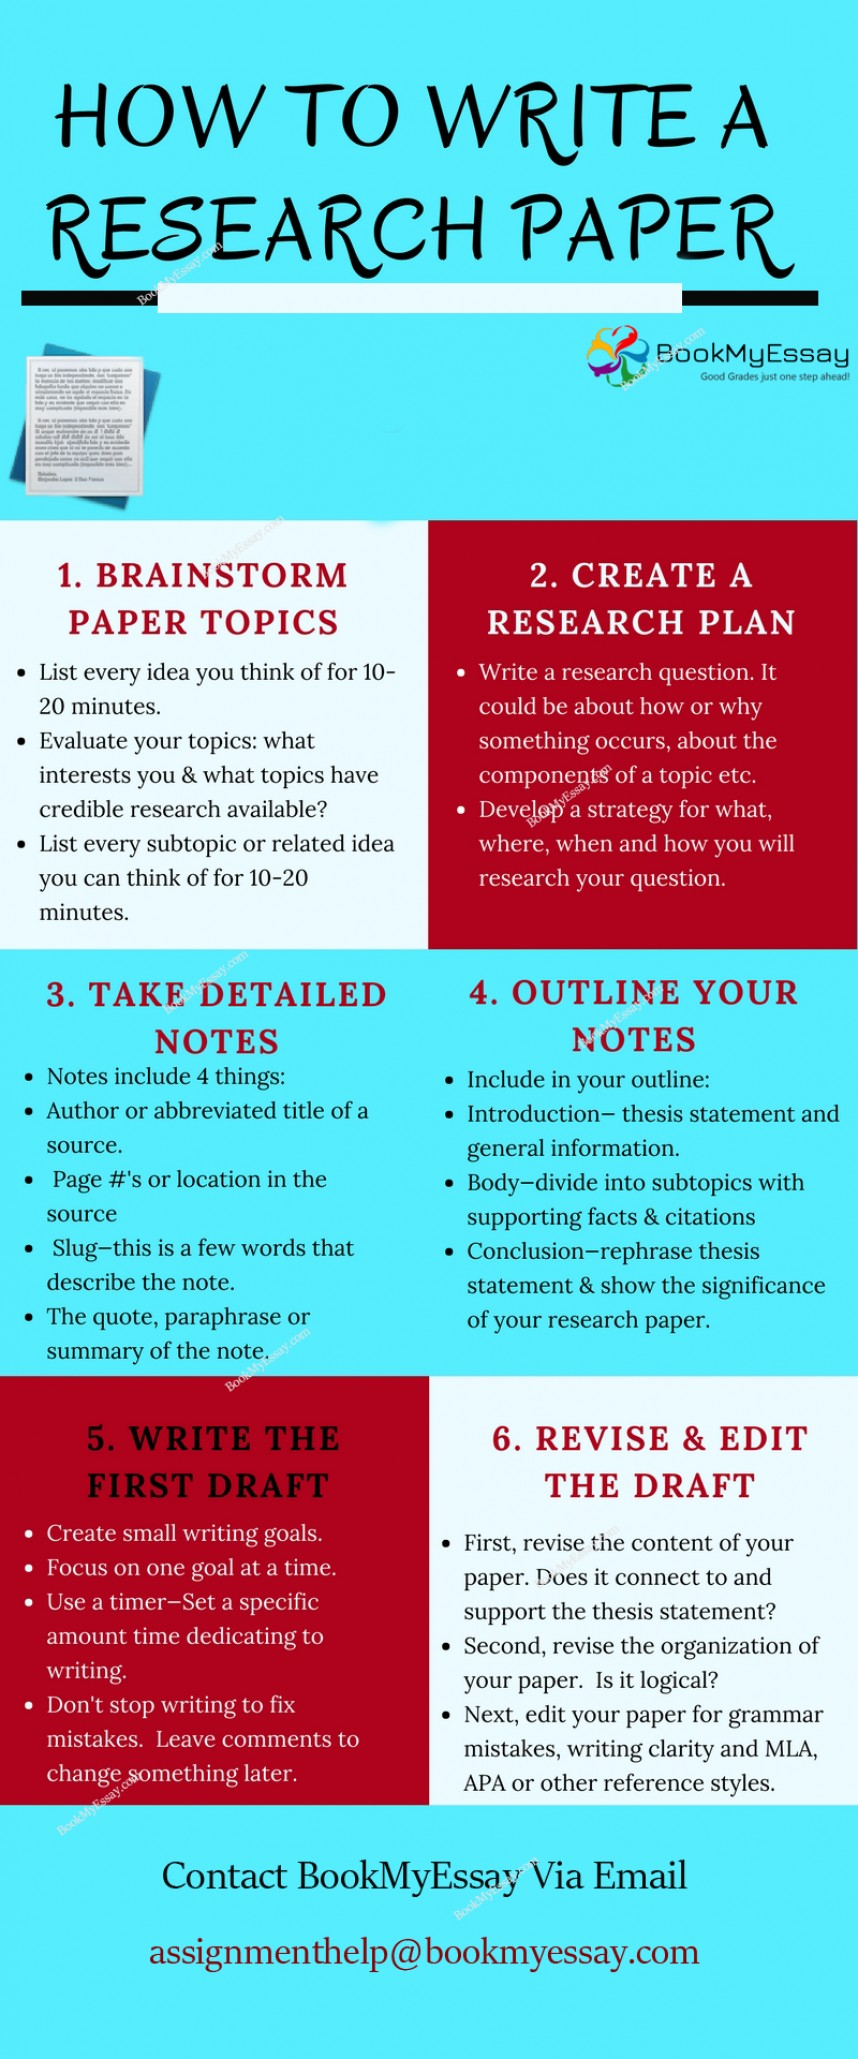 003 Research Paper Writing Service Dreaded Services In India Best Academic Online 868